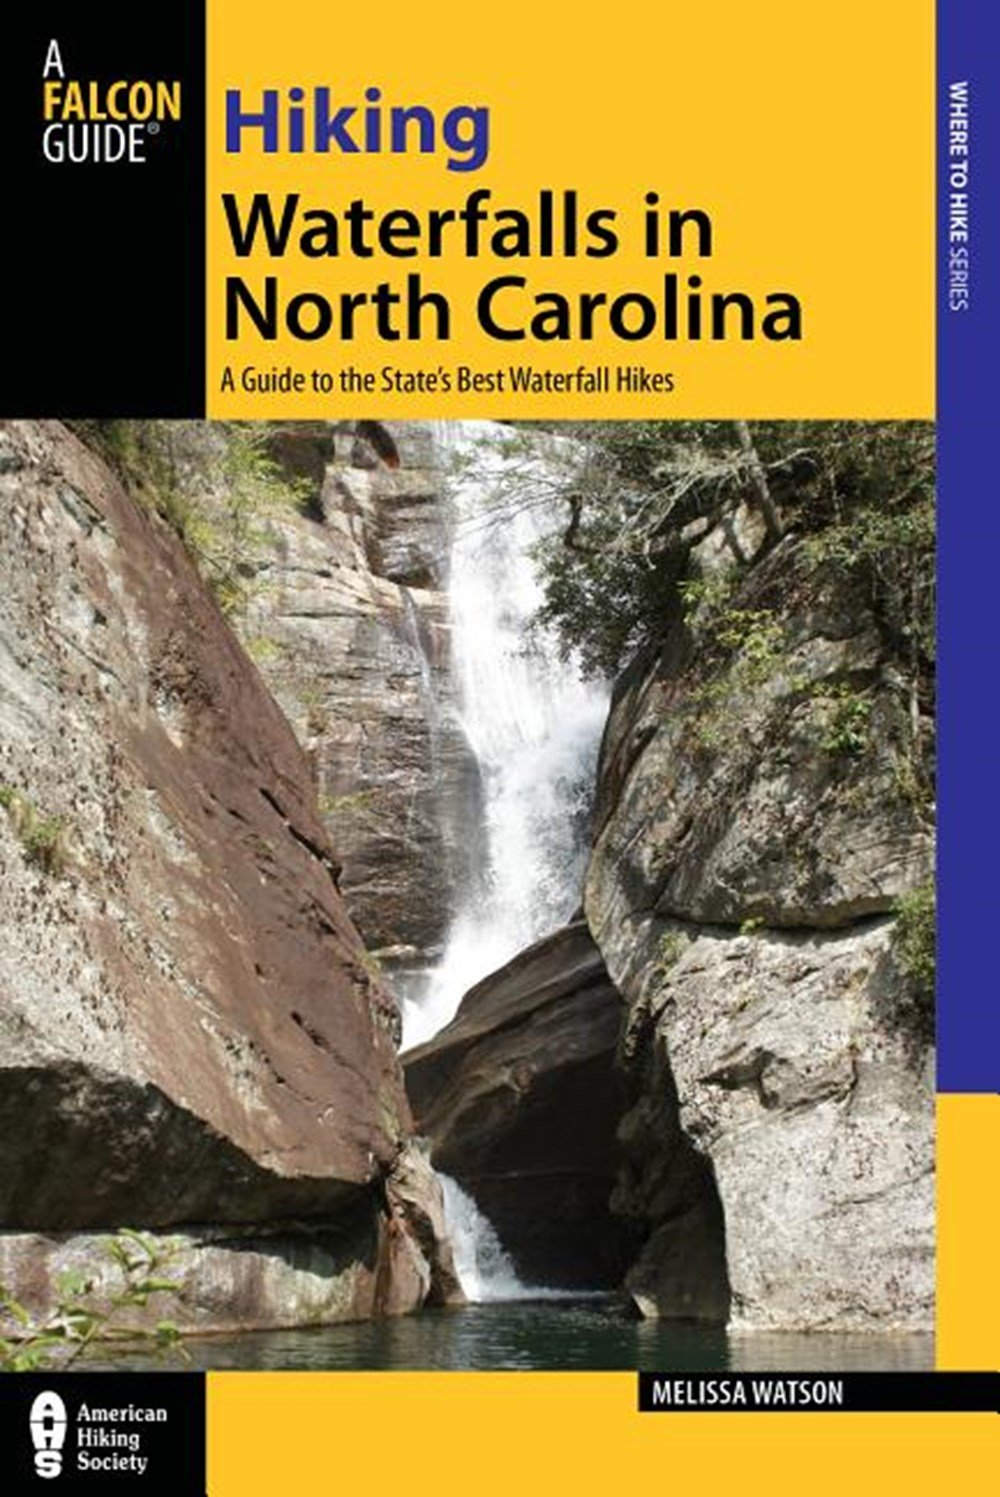 Hiking Waterfalls in North Carolina A Guide to the State's Best Waterfall Hikes